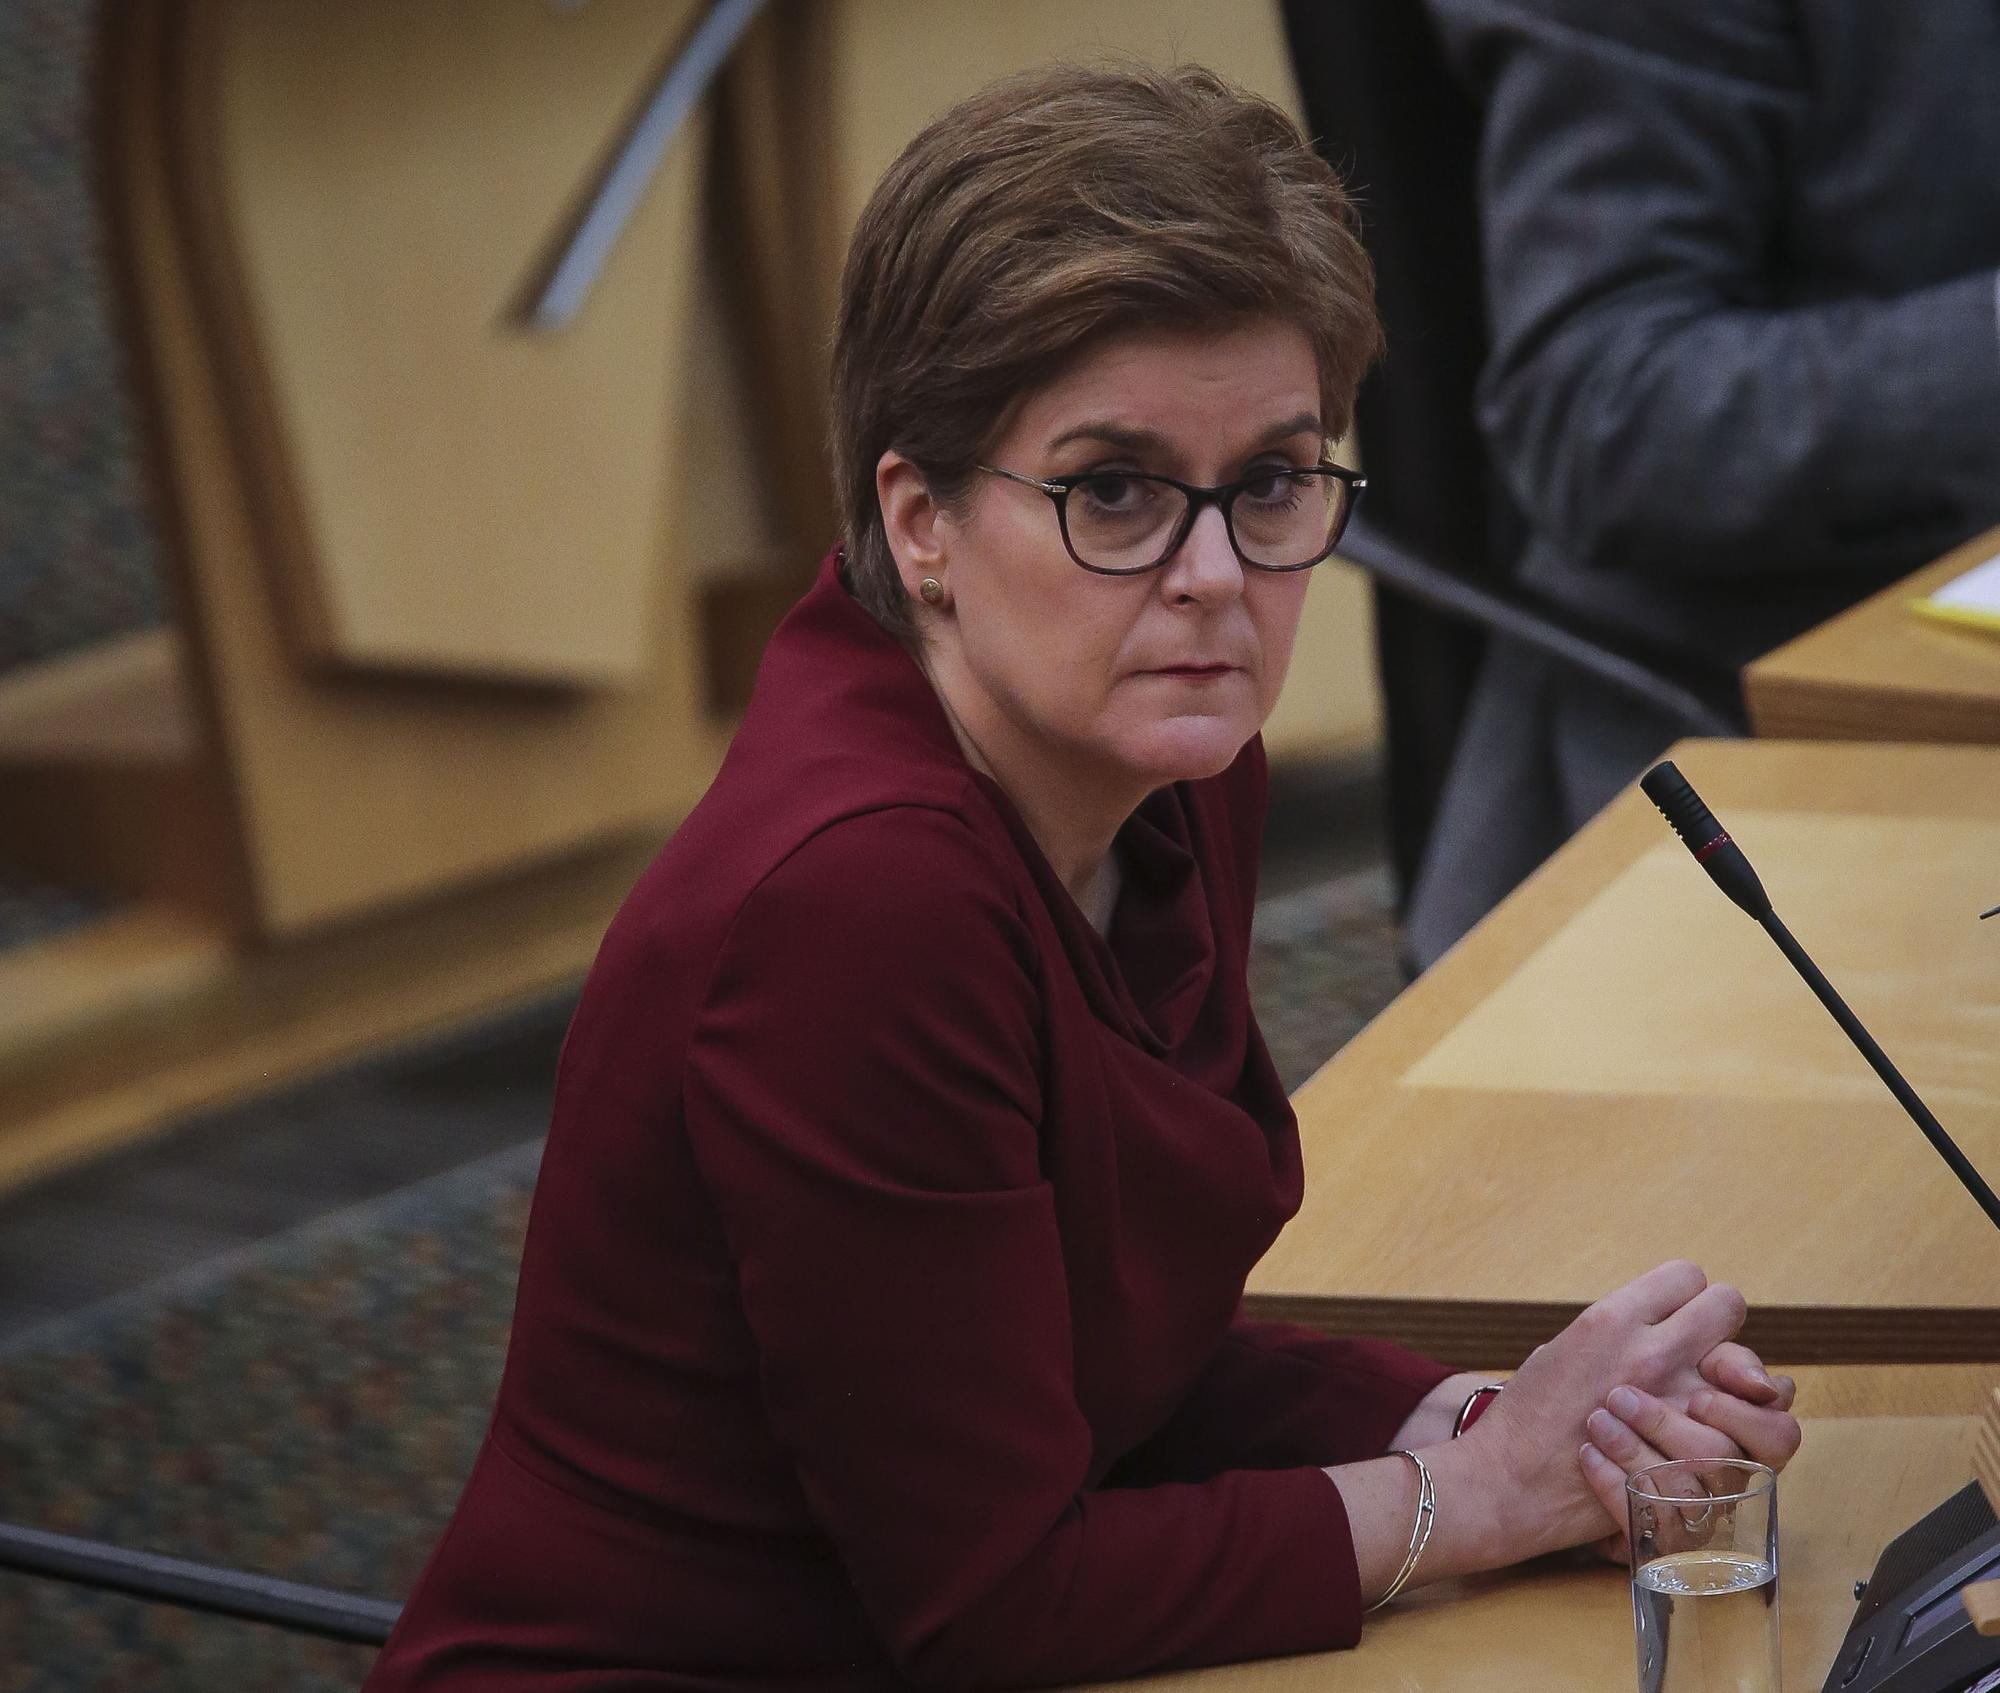 scotsman.com - Jane Bradley - COP 26: Nicola Sturgeon says continued oil and gas extraction is 'wrong'